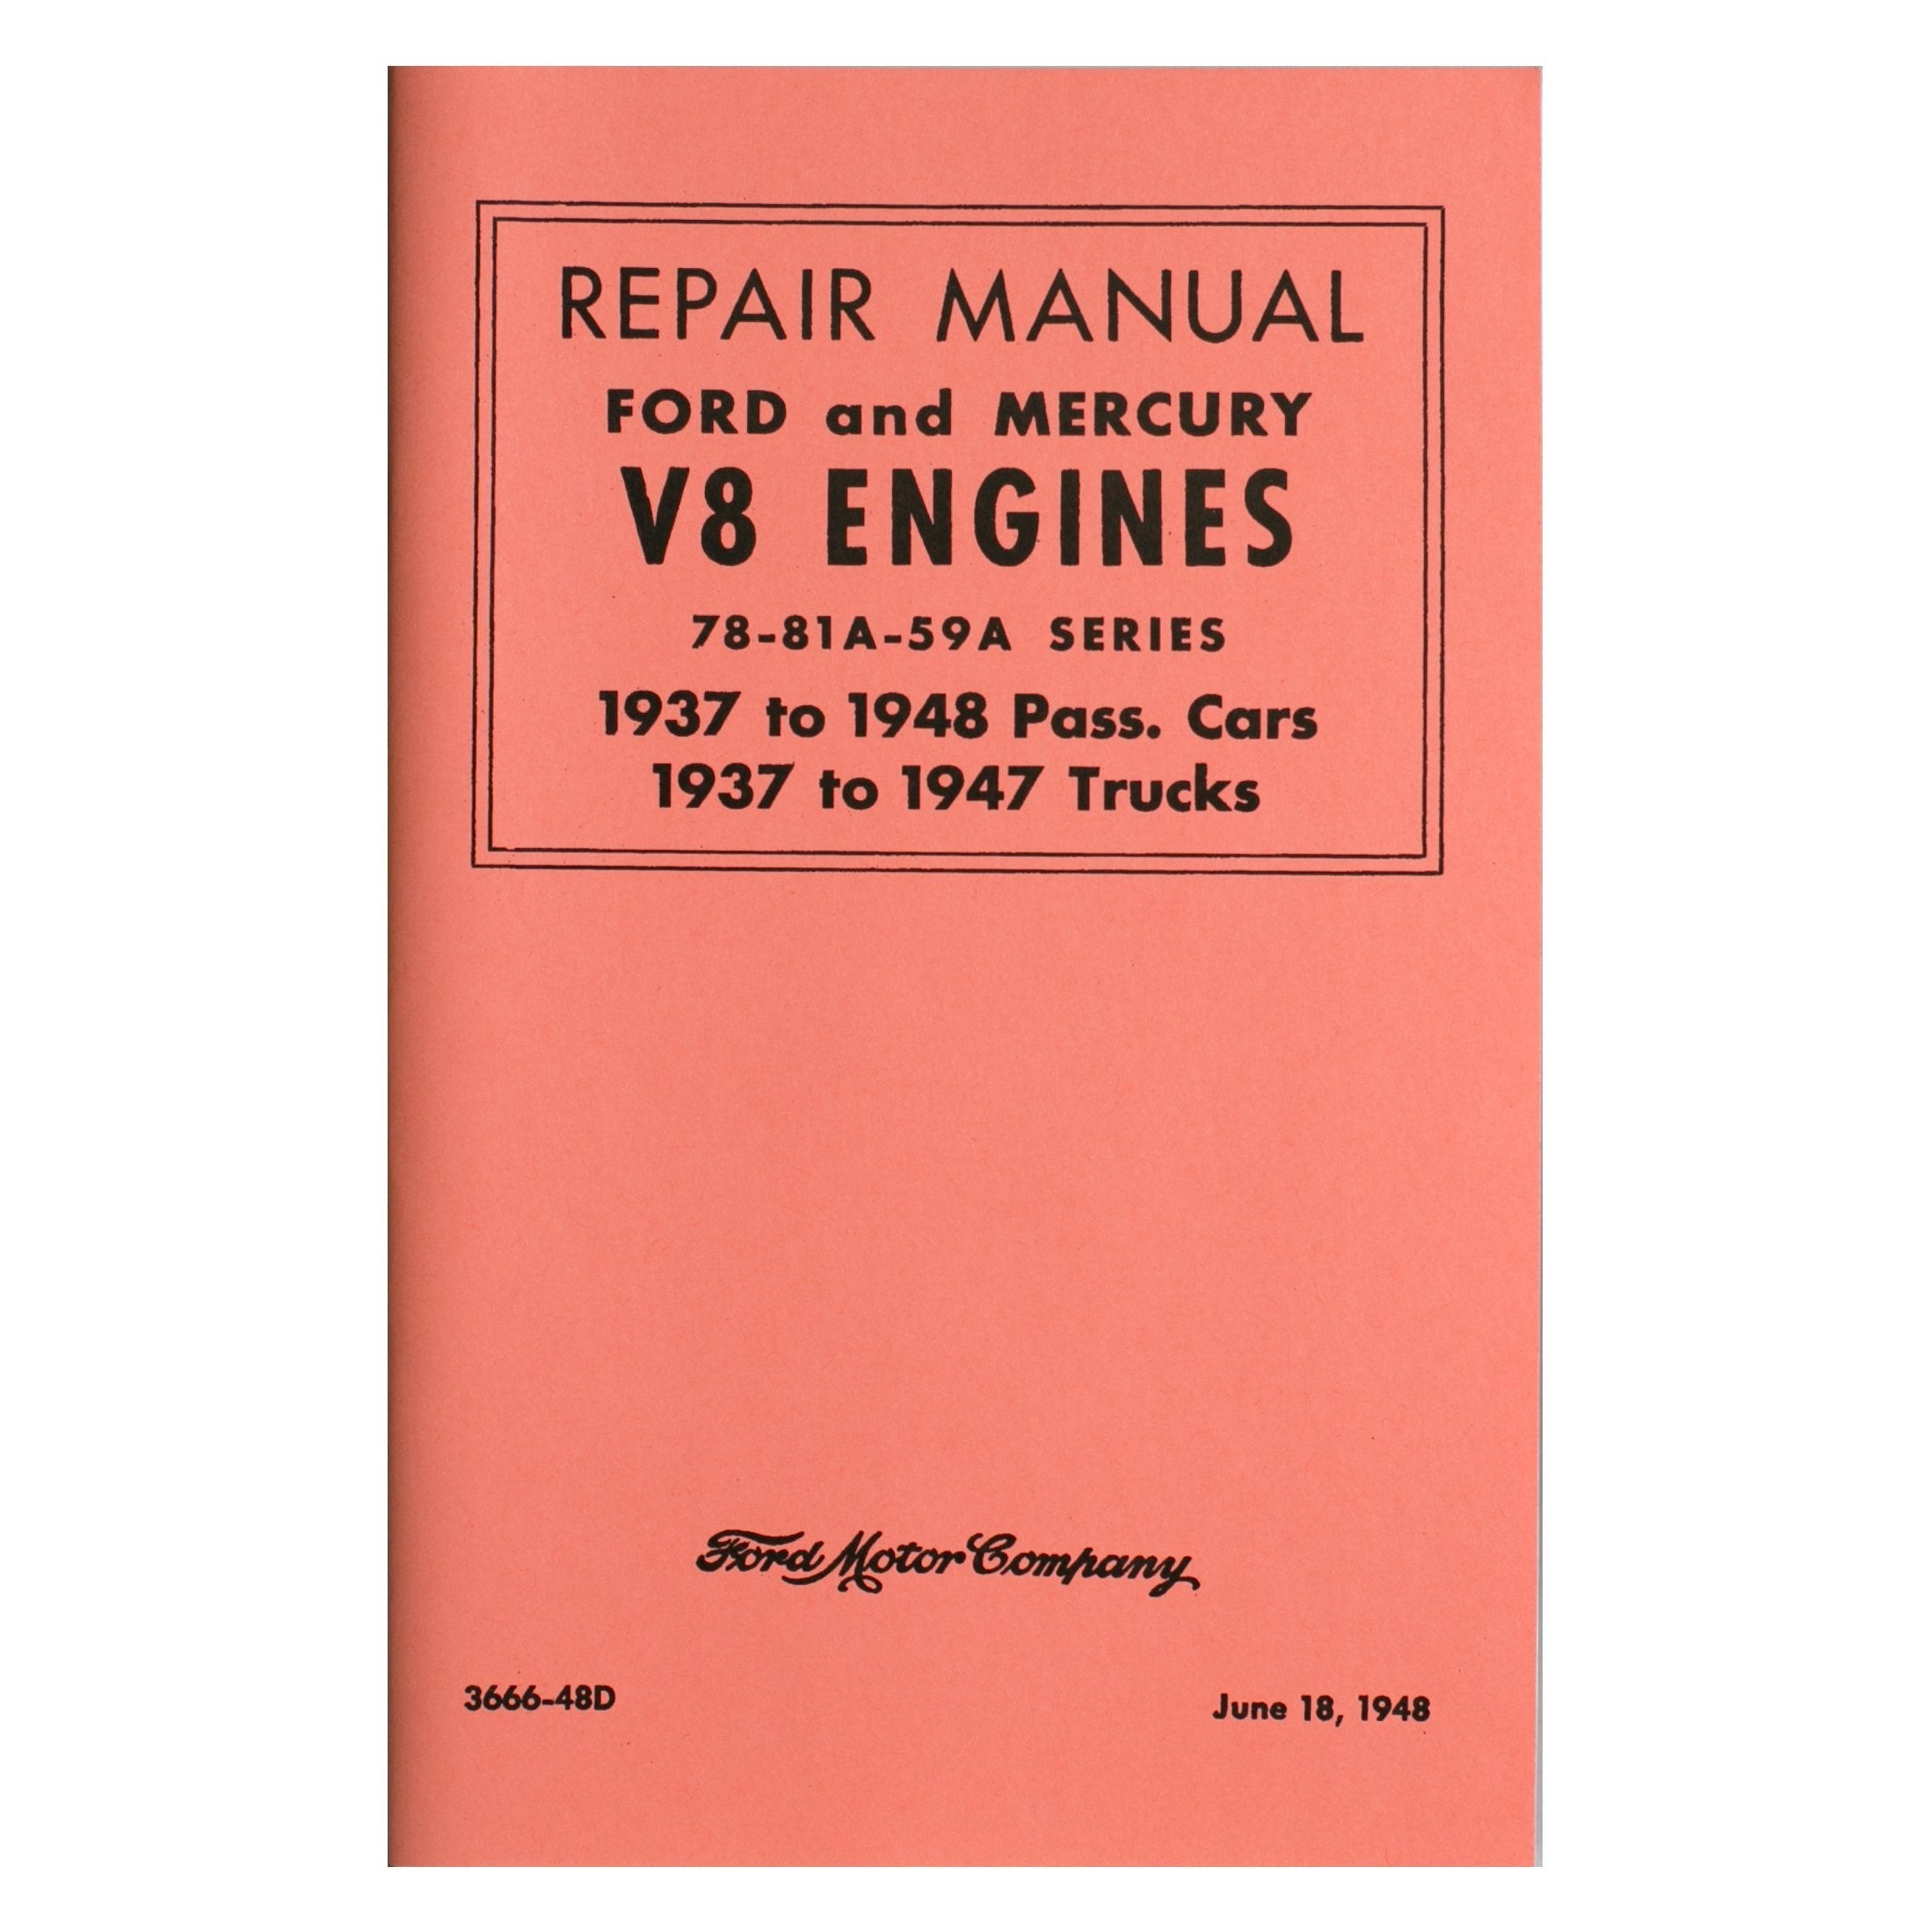 Repair Manual Ford & Mercury V-8